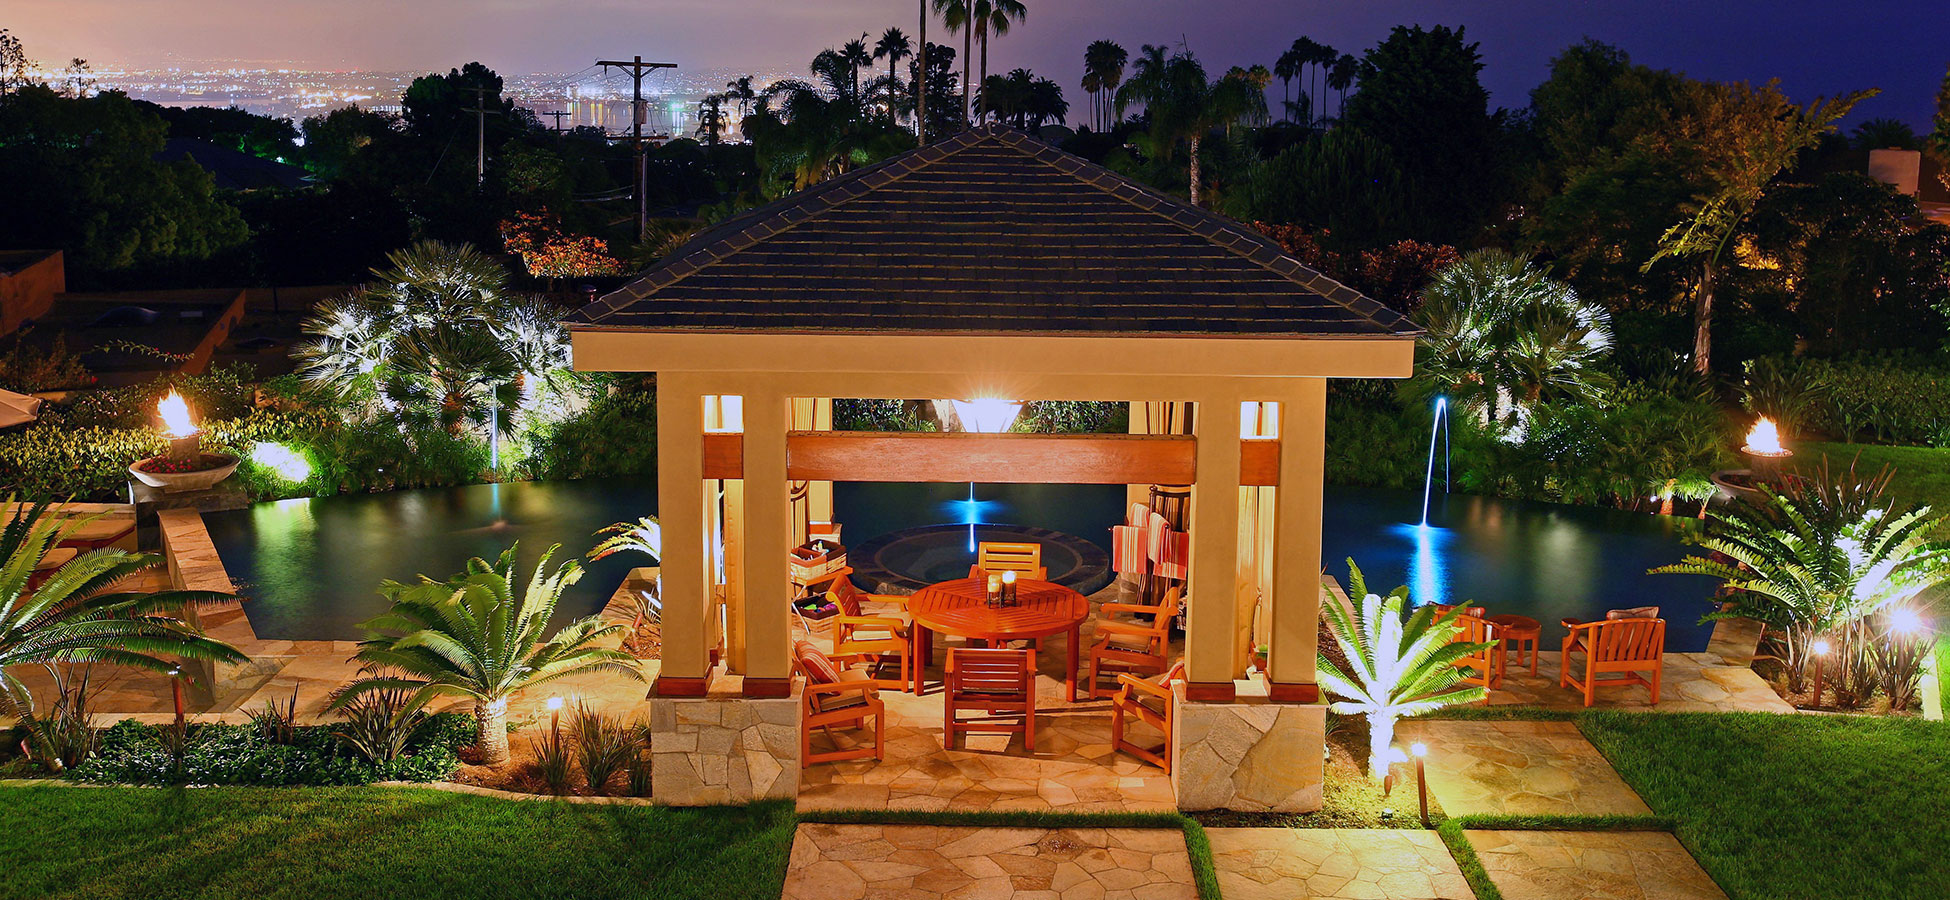 lightscape designs ILLUMINATING YOUR OUTDOOR EXPERIENCE